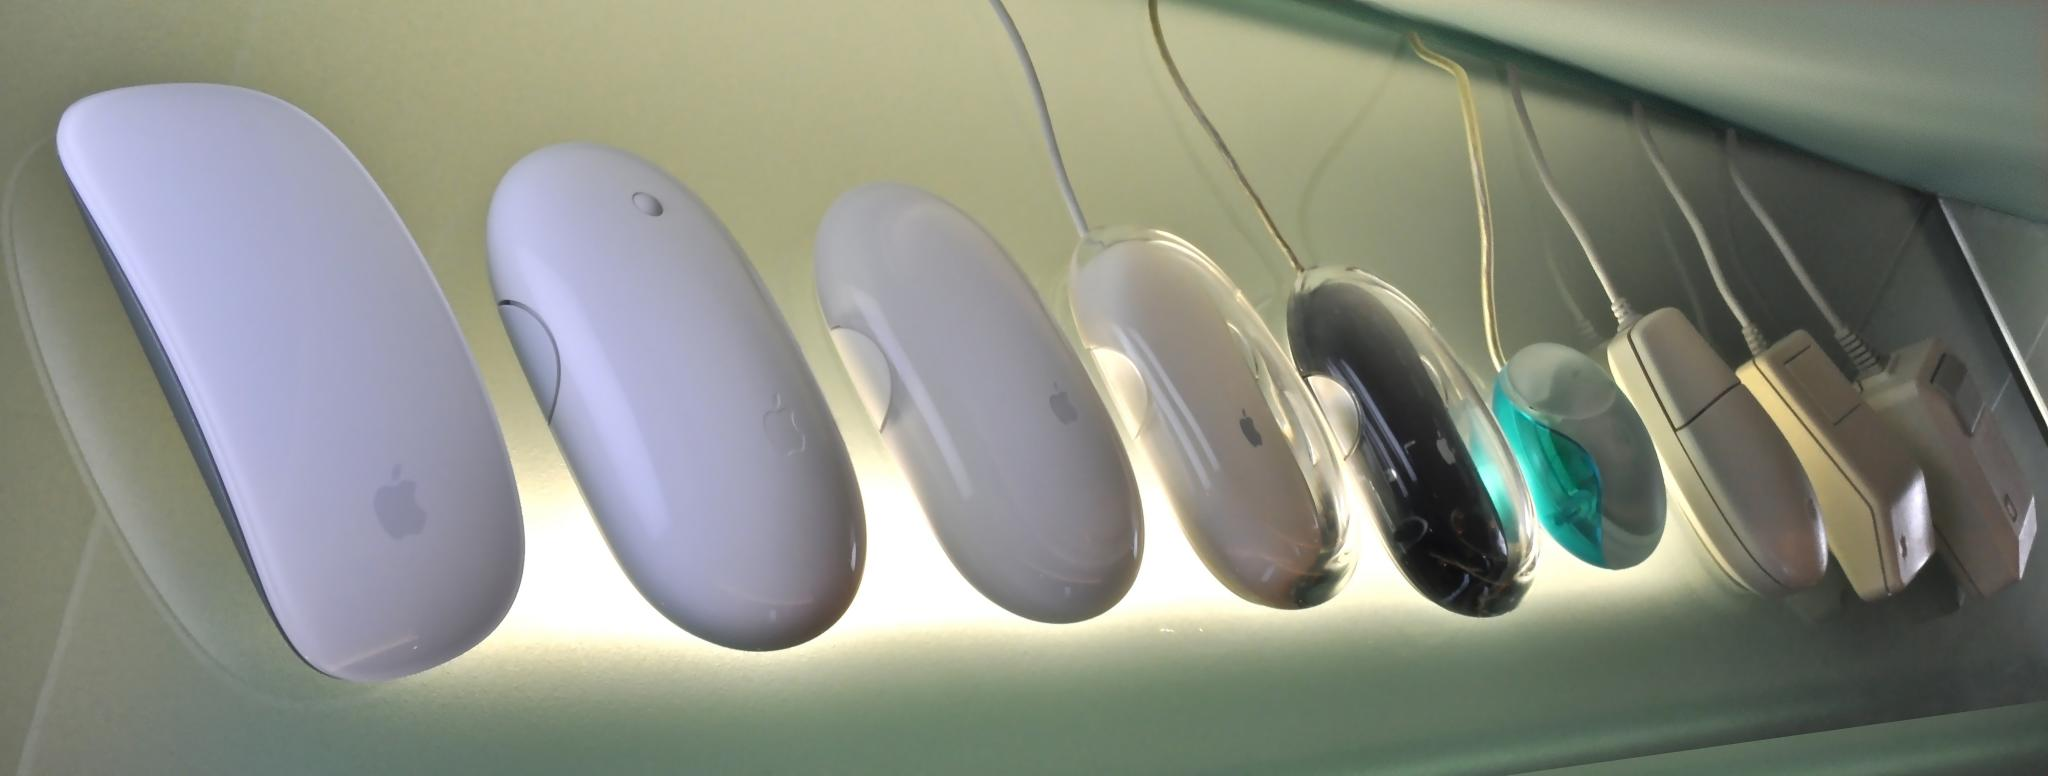 Apple-Mouse-from-1983-to-2009